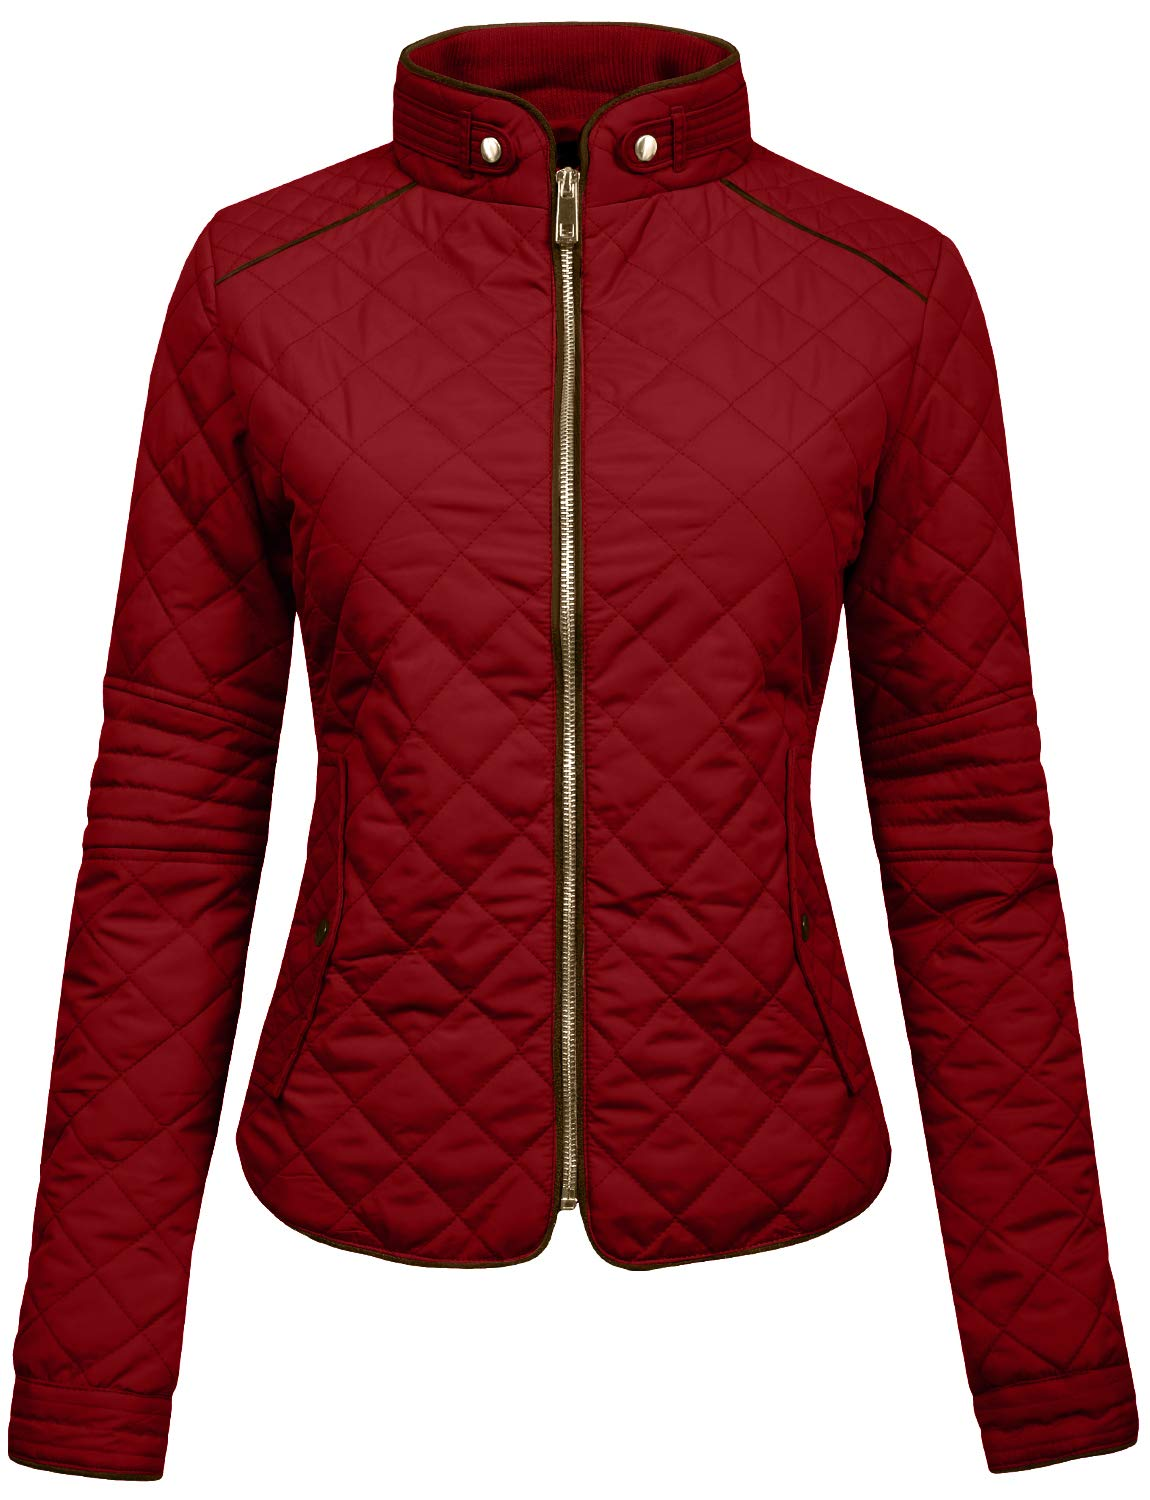 NE PEOPLE Womens Lightweight Quilted Zip Jacket, NEWJ22-BURGUNDY, Small